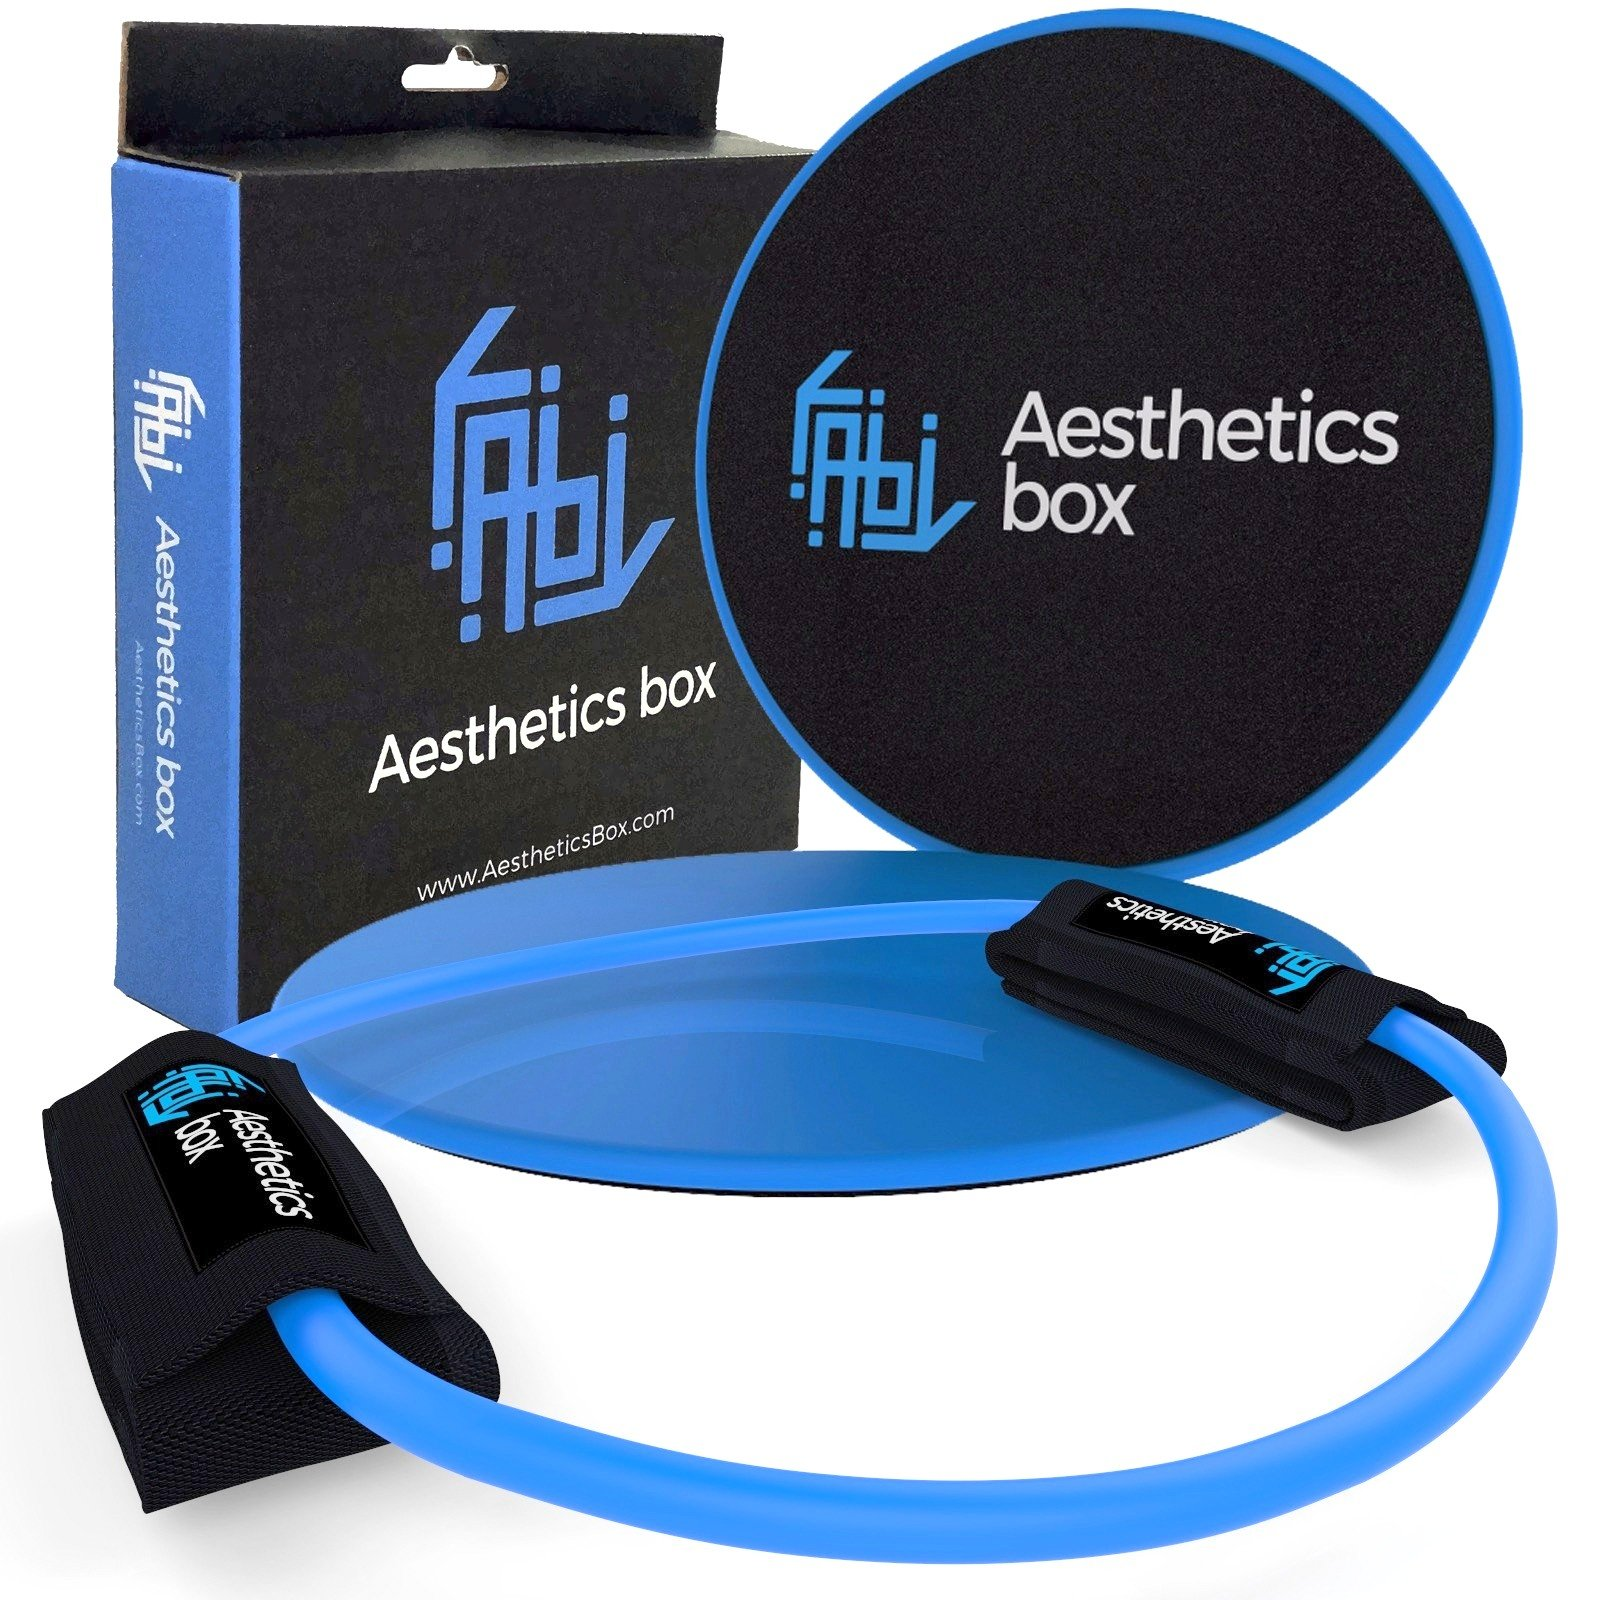 Aesthetics Box | Gliding Discs Exercise Sliders Fitness Core + Bonus Resistance Tubes & Ideal Workout Ankle Straps Set + E-Book | Perfect Kit for Gym - Travel - Home Training | Full Body Strength |